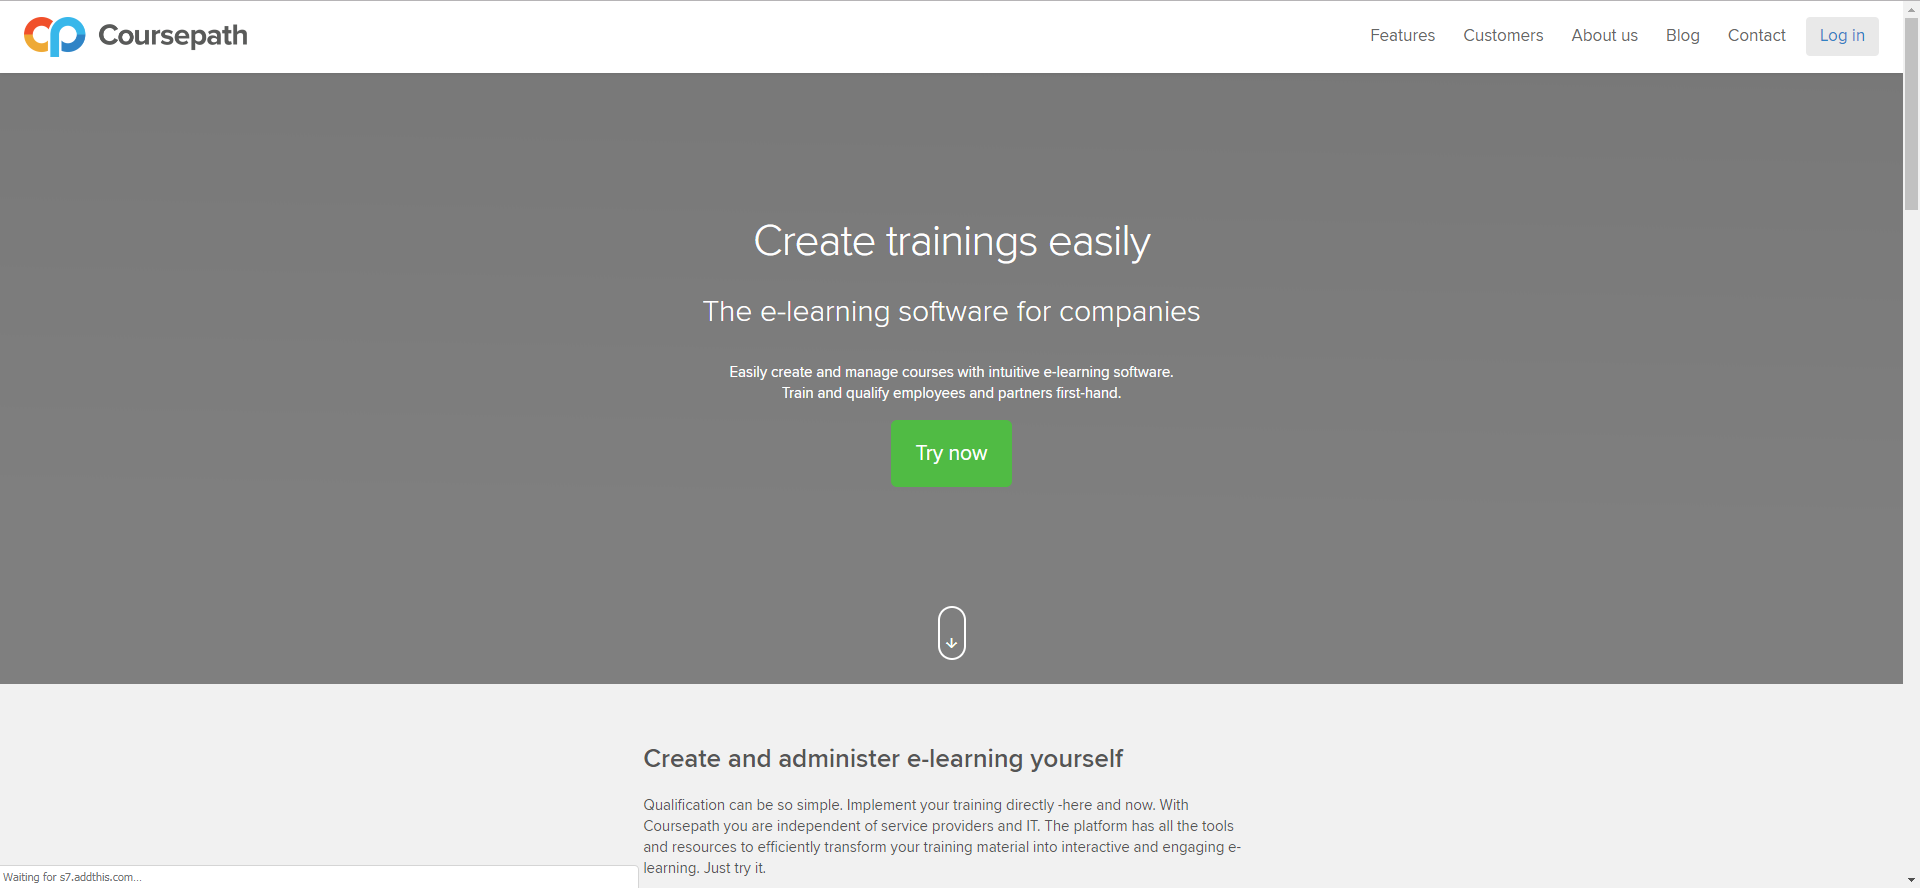 best buy learning network,best buy elearnings,best buy learning,free e learning software,best buy learning center,e learning software free download,elearning software comparison,list of e learning software,e learning development software